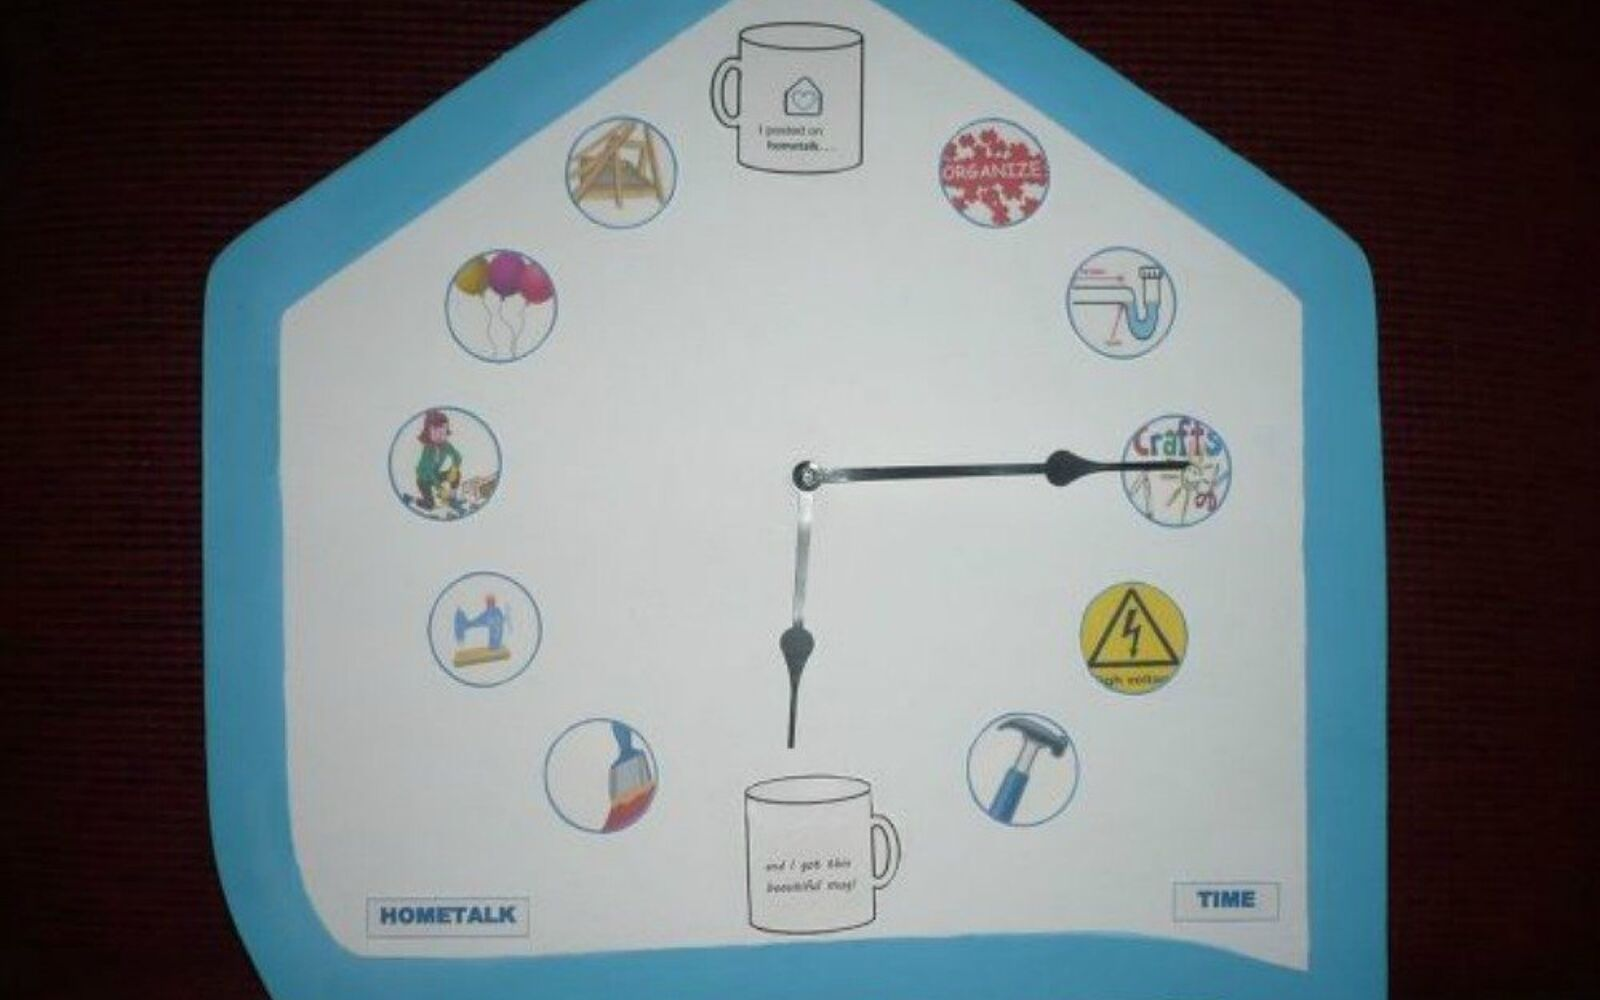 s why everyone is using hometalk blue in their home, home decor, It frames a cute clock